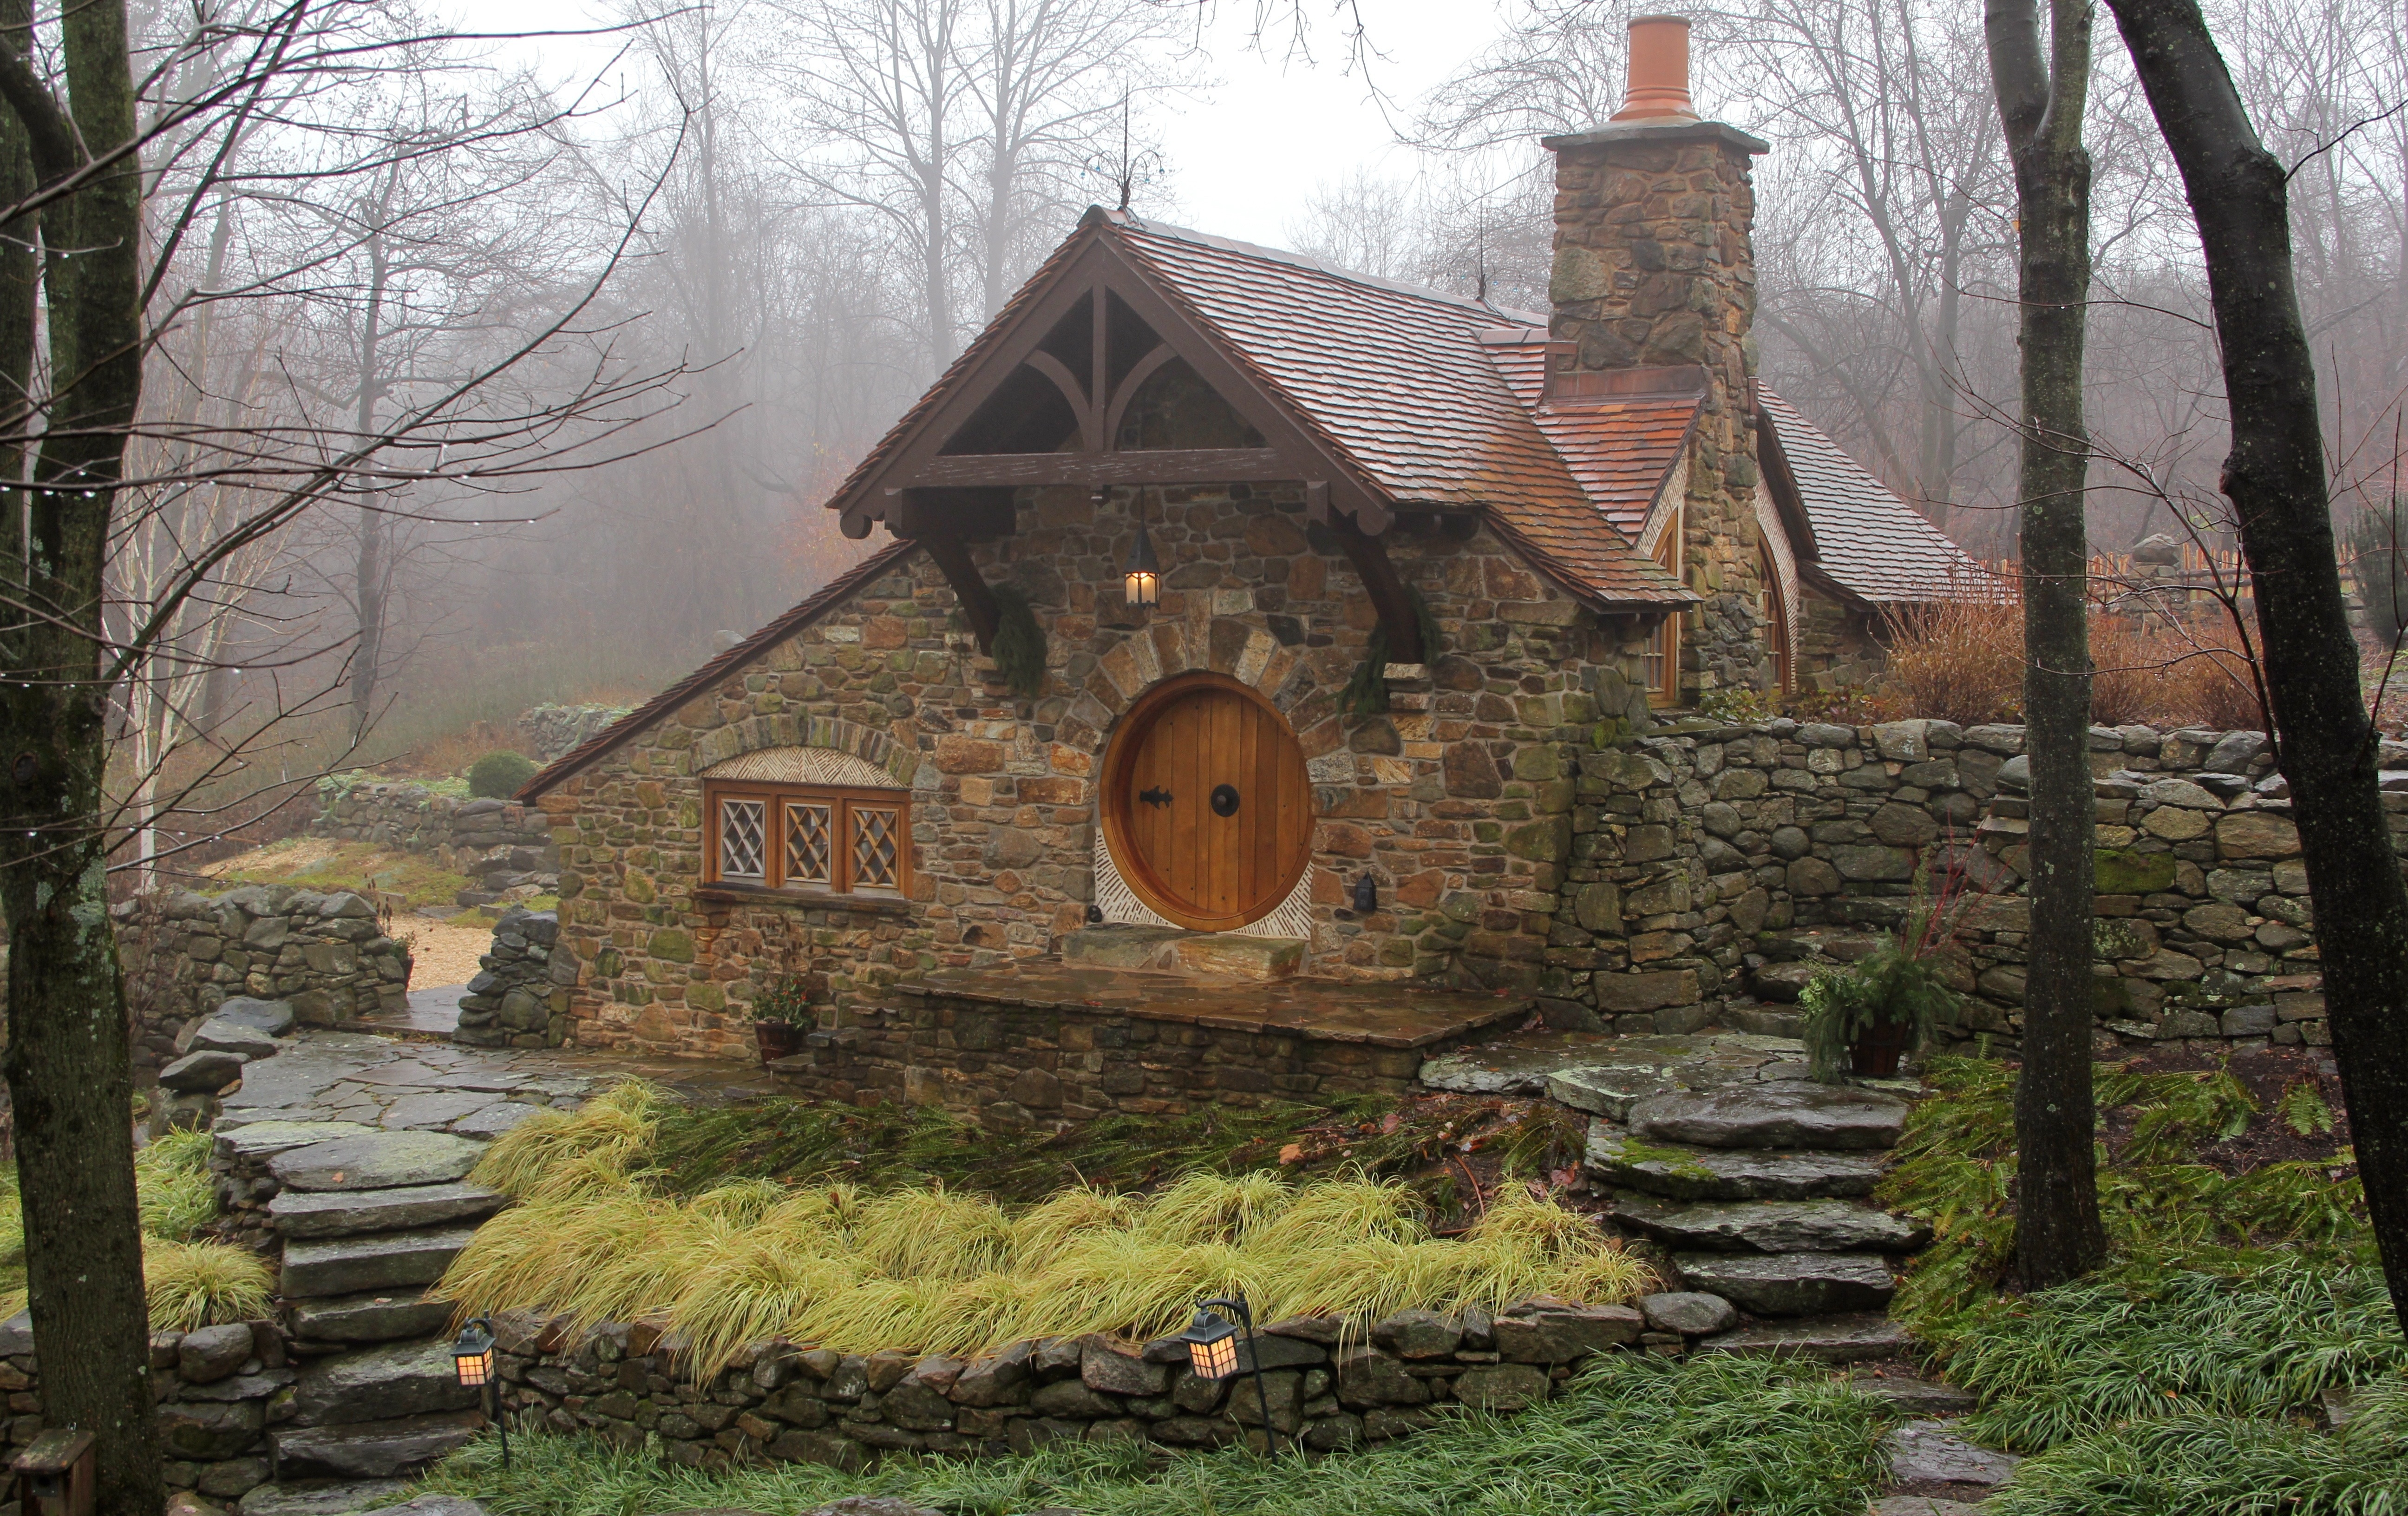 Hobbit Hole House no orcs allowed: hobbit house brings middle-earth to pa. | boise